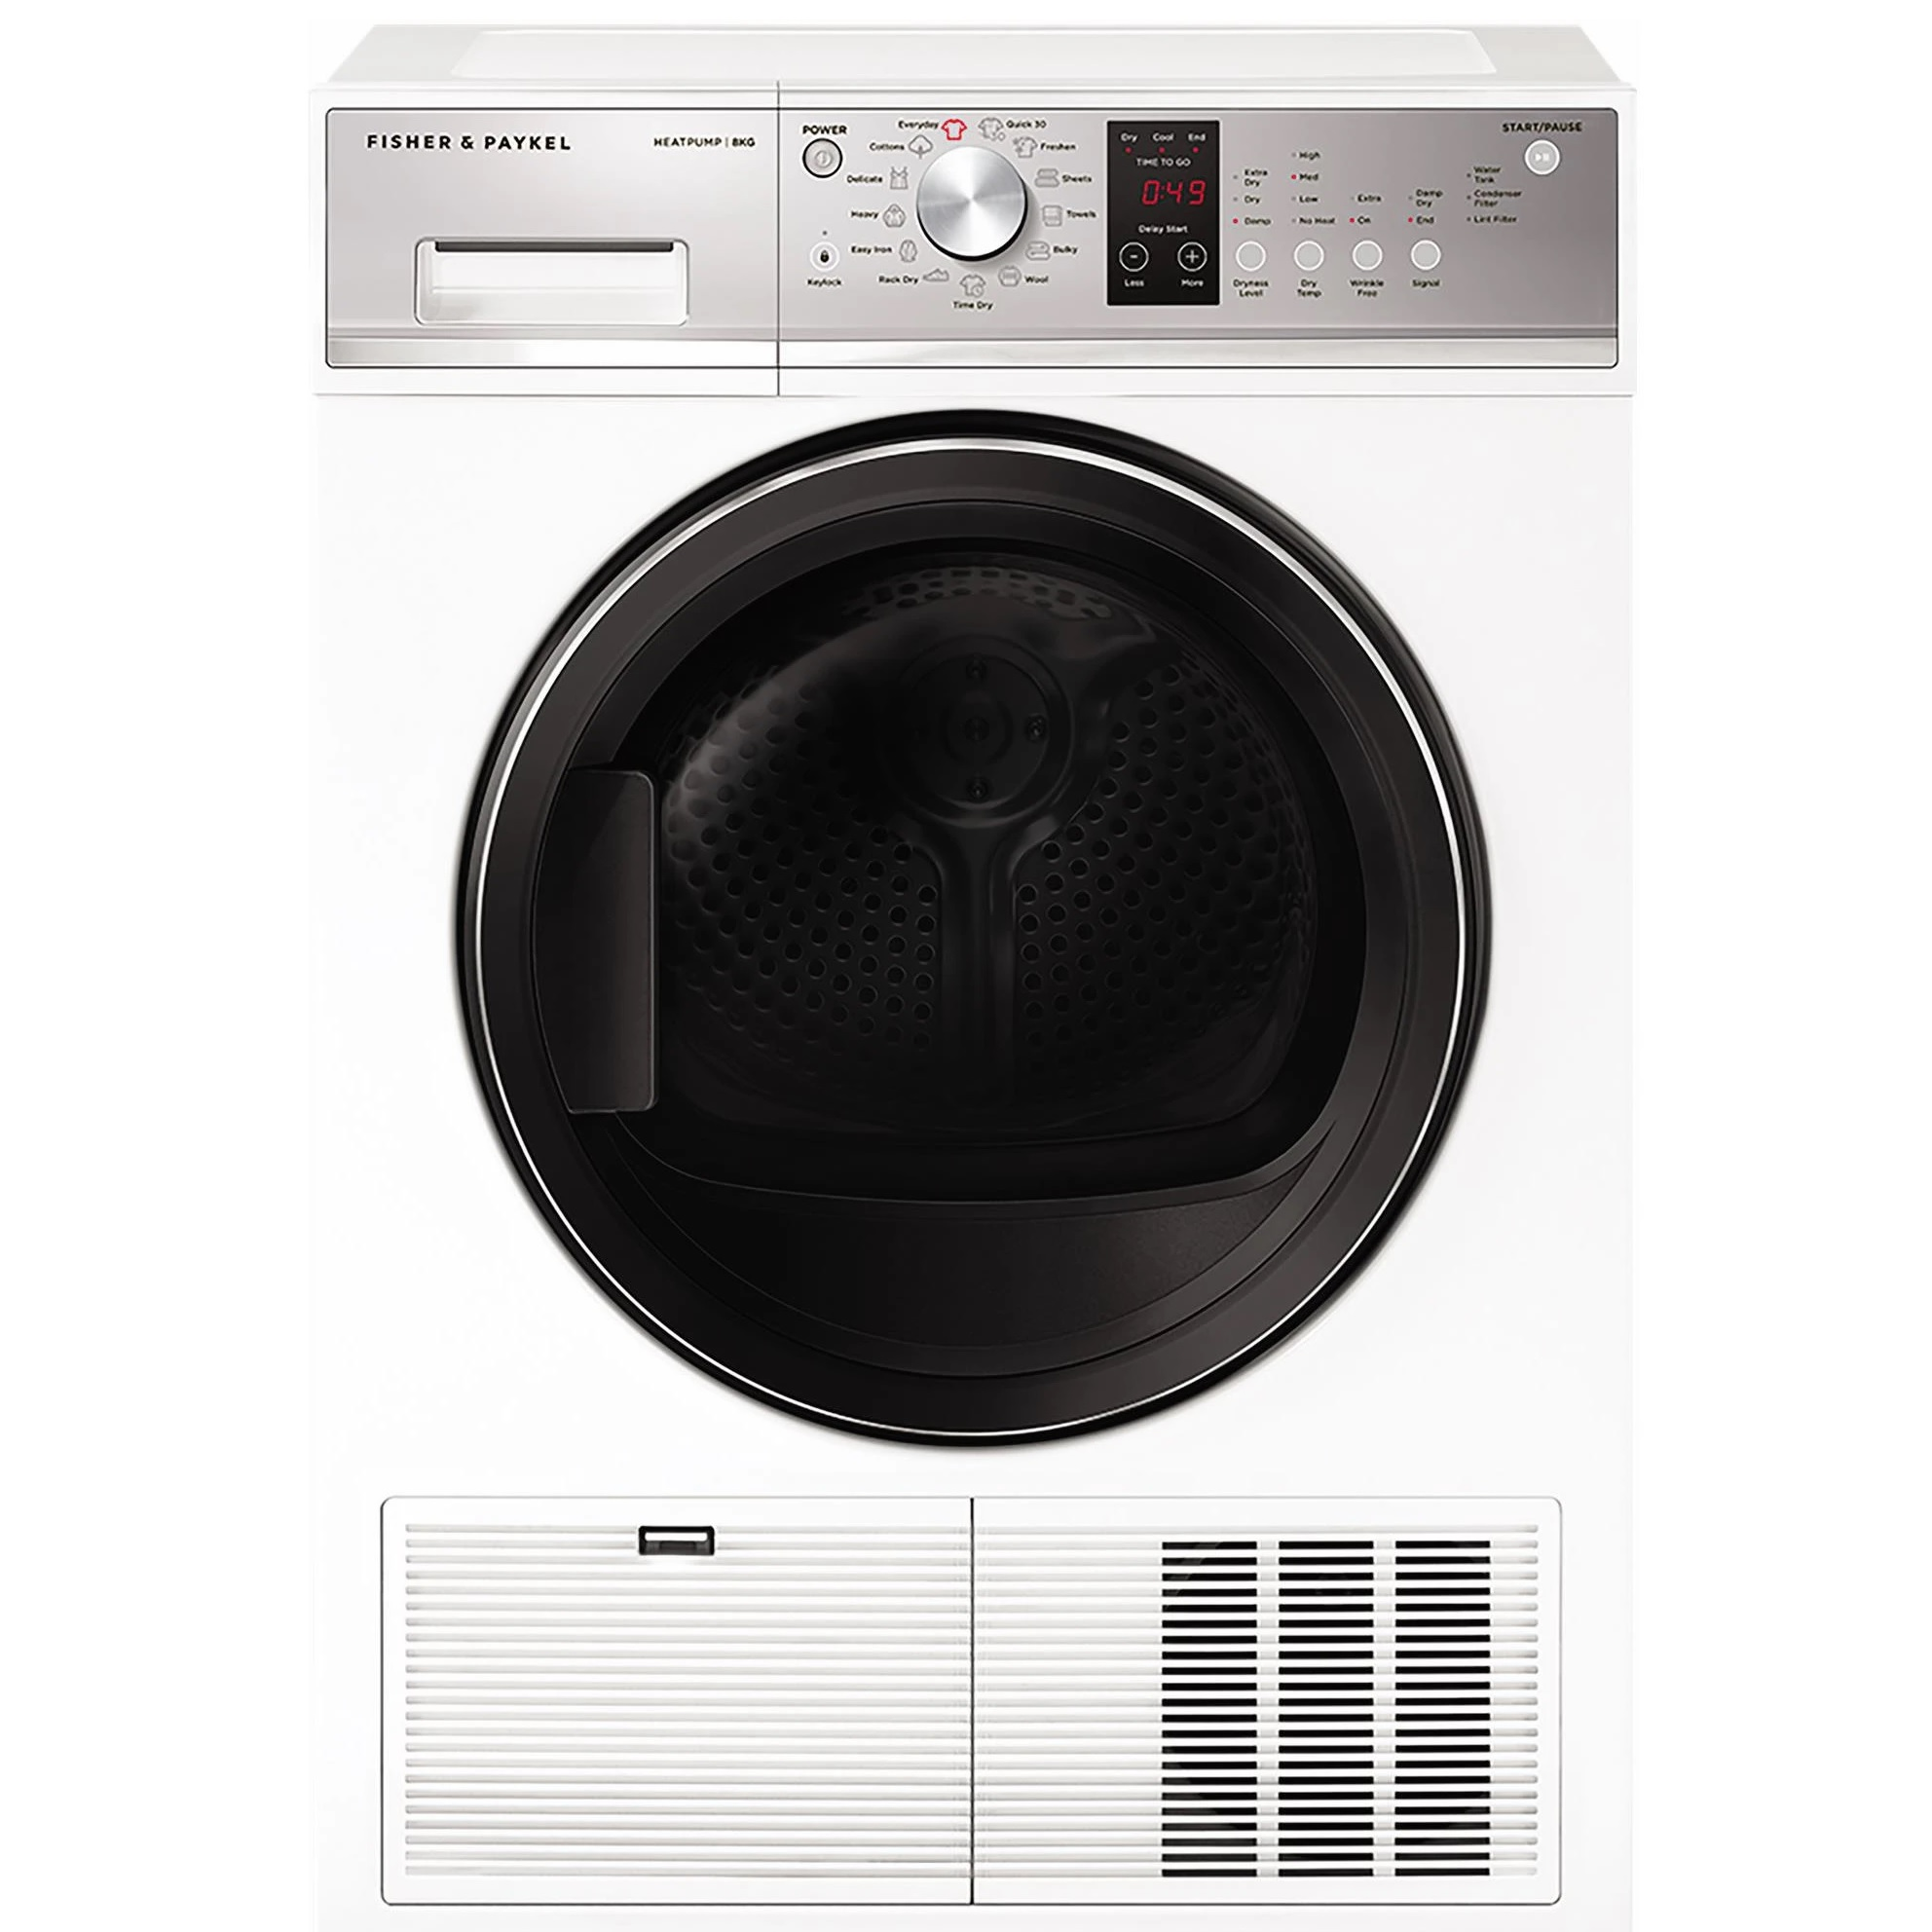 Fisher & Paykel DH8060P3 Dryer